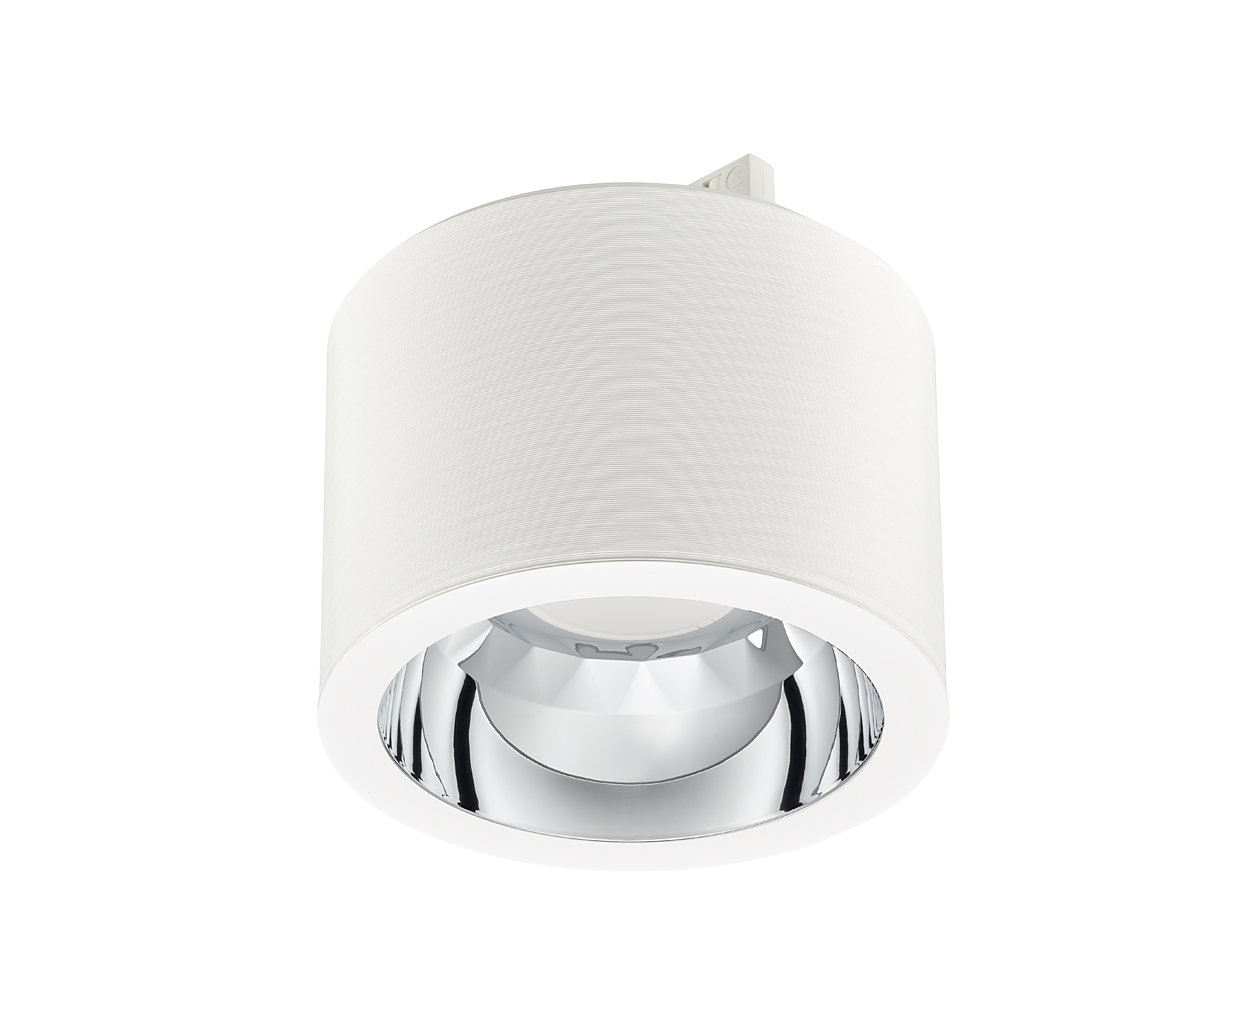 GreenSpace – high-efficiency sustainable LED solution